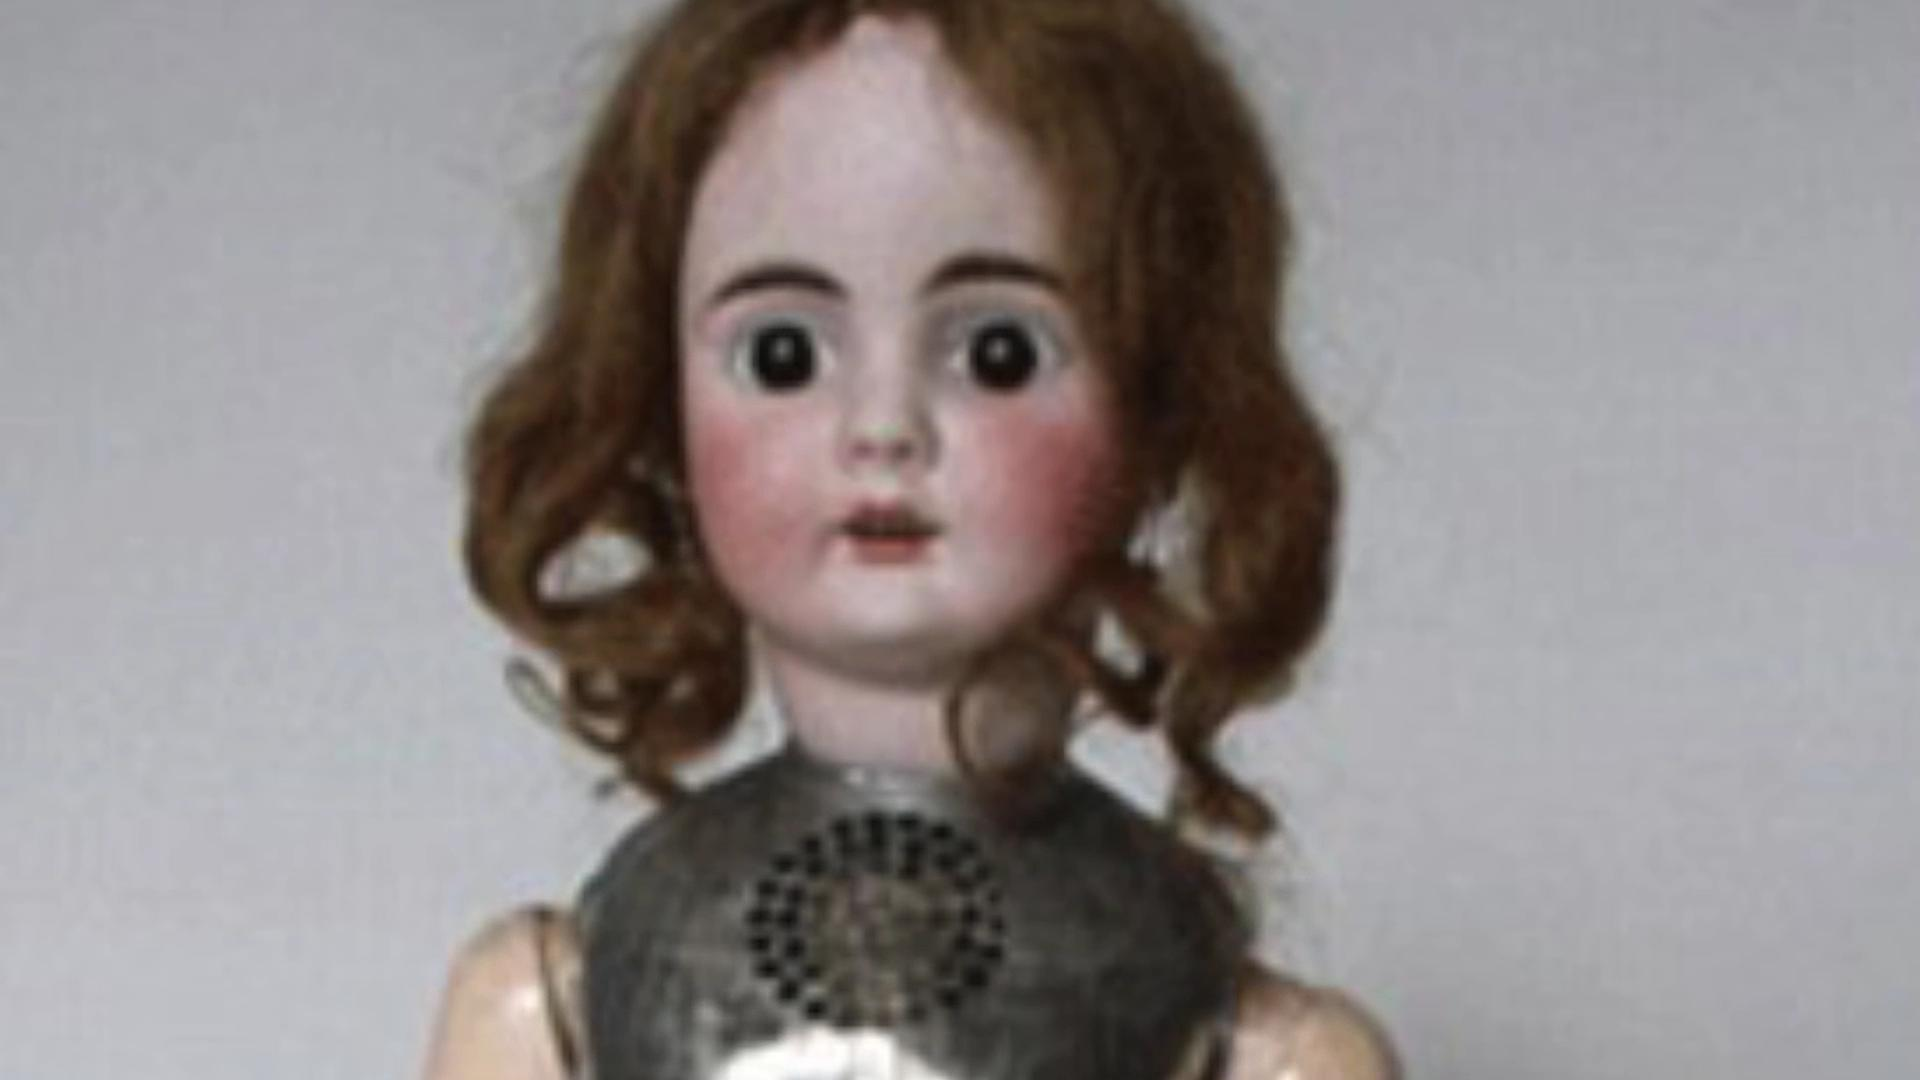 Hear Thomas Edison's talking doll that scared kids in 1890